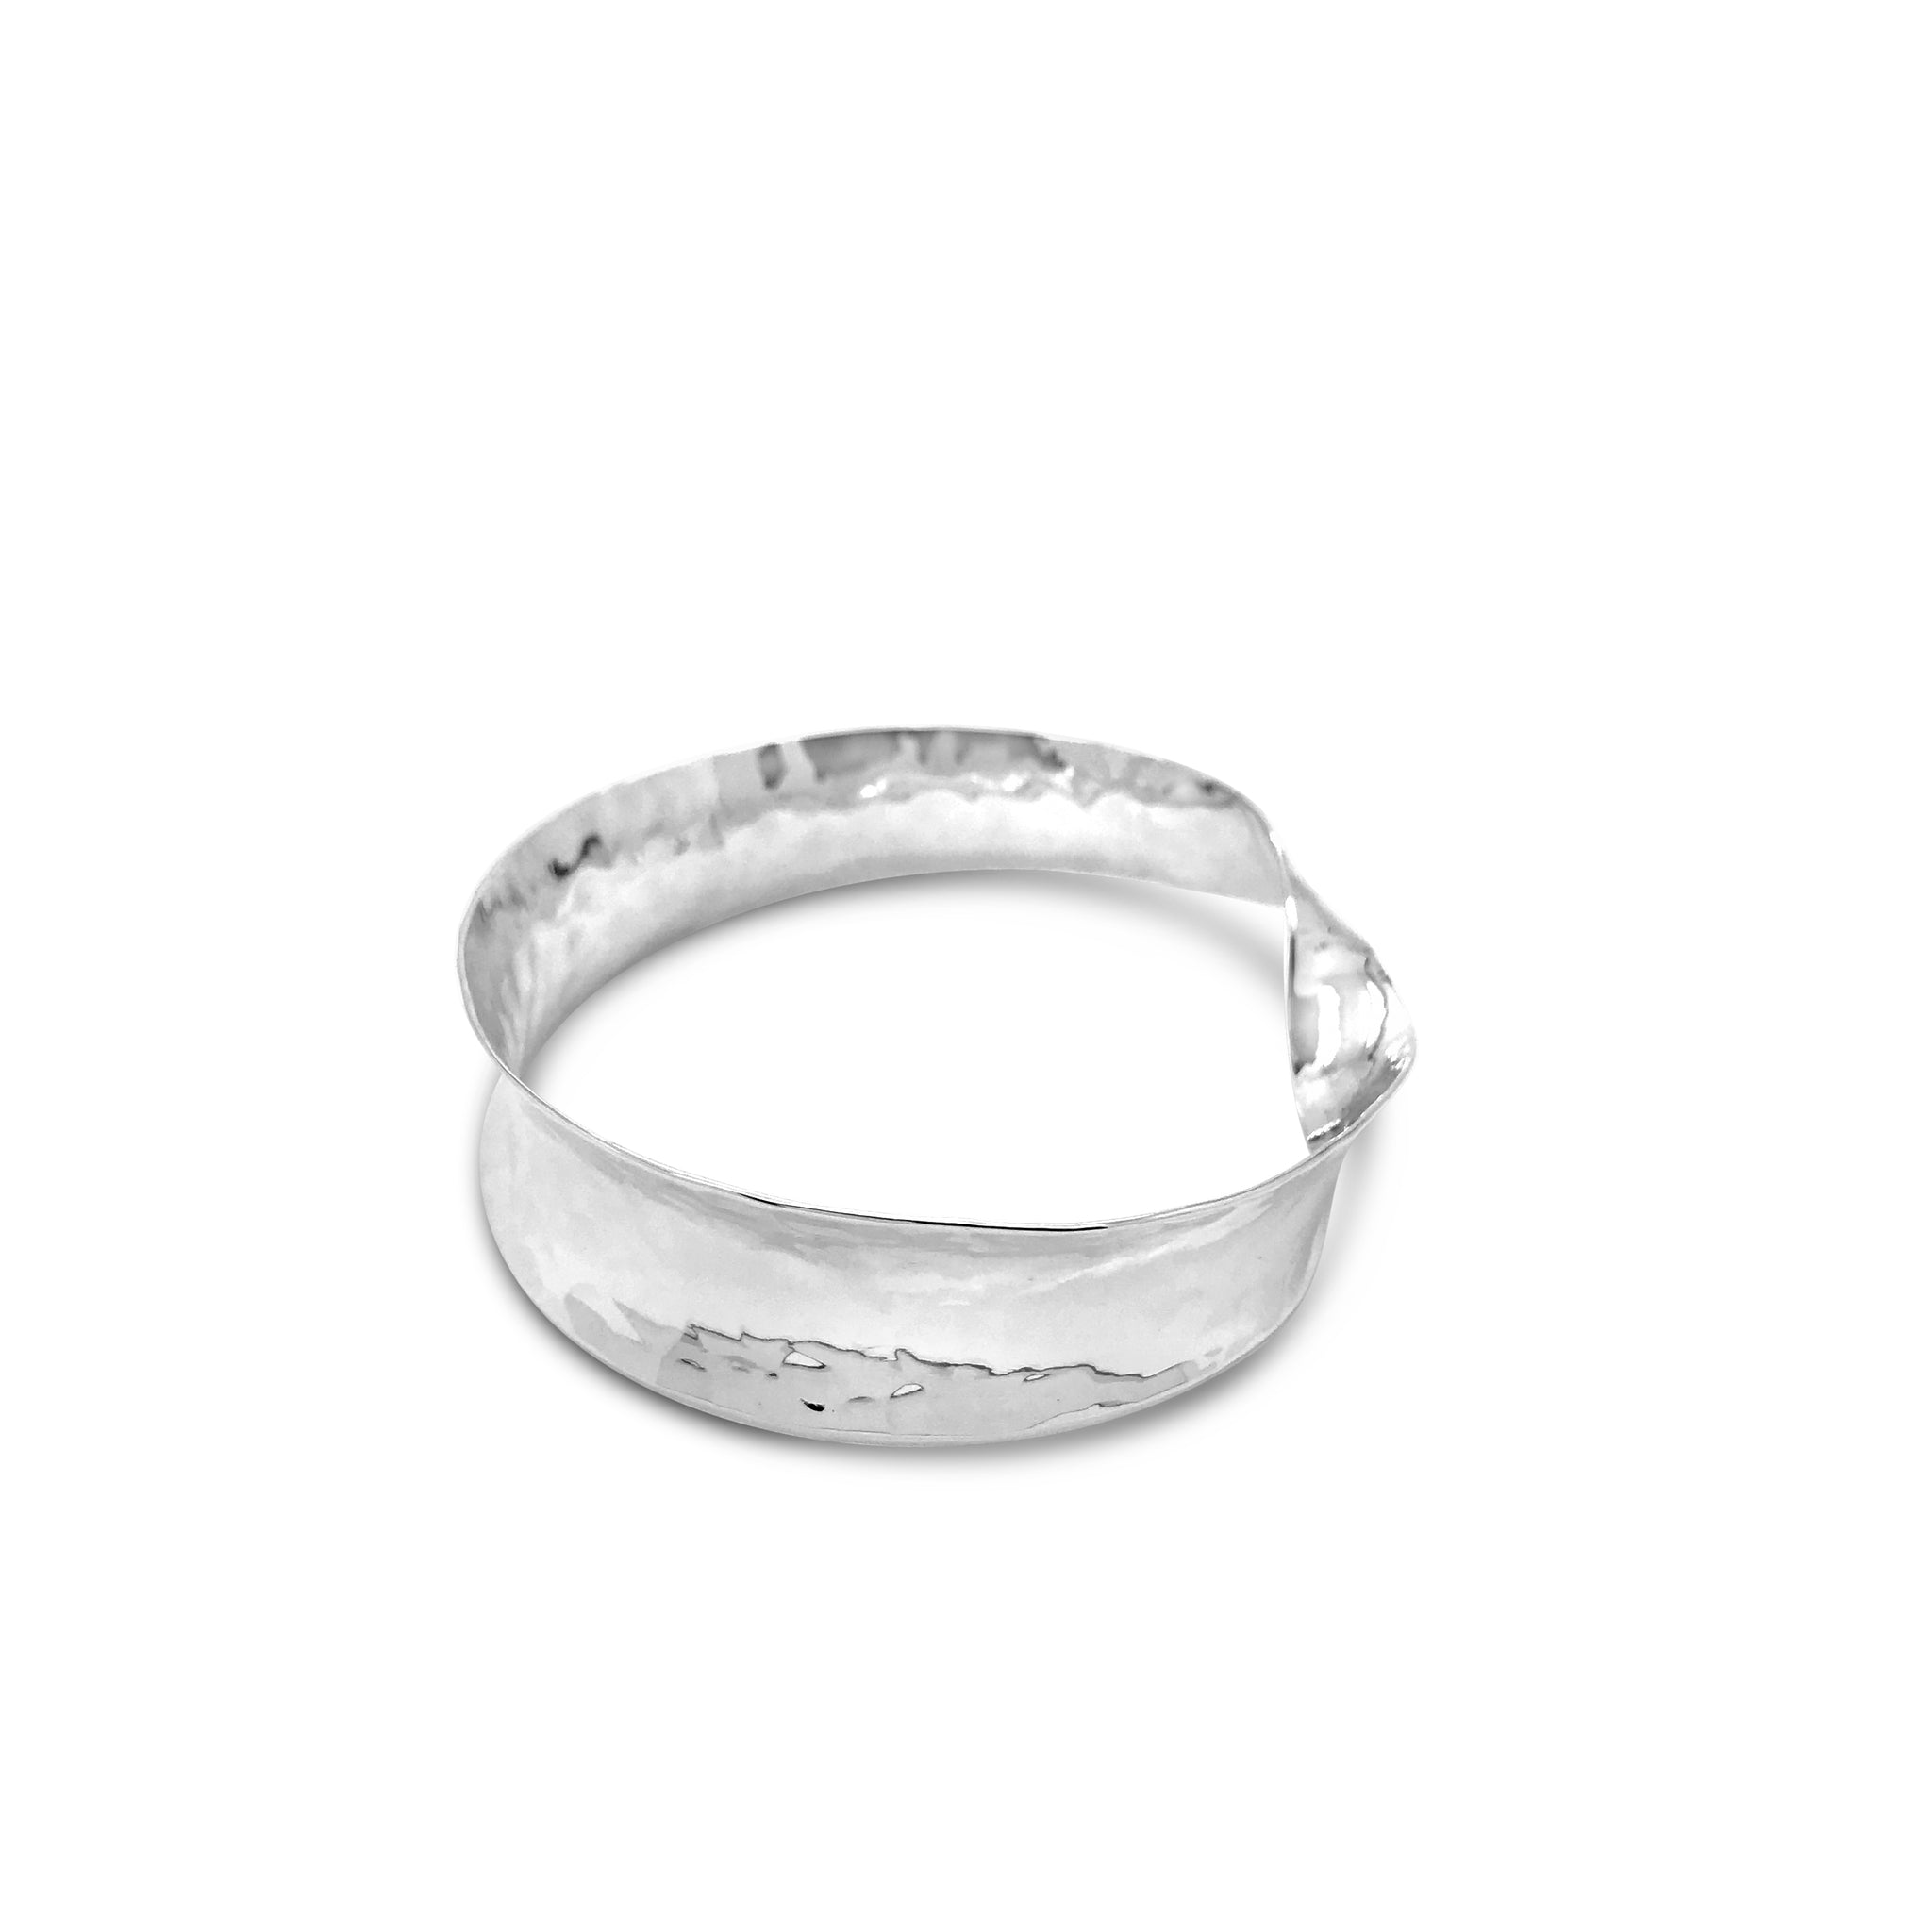 HAMMERED CONCAVE TWIST BANGLE